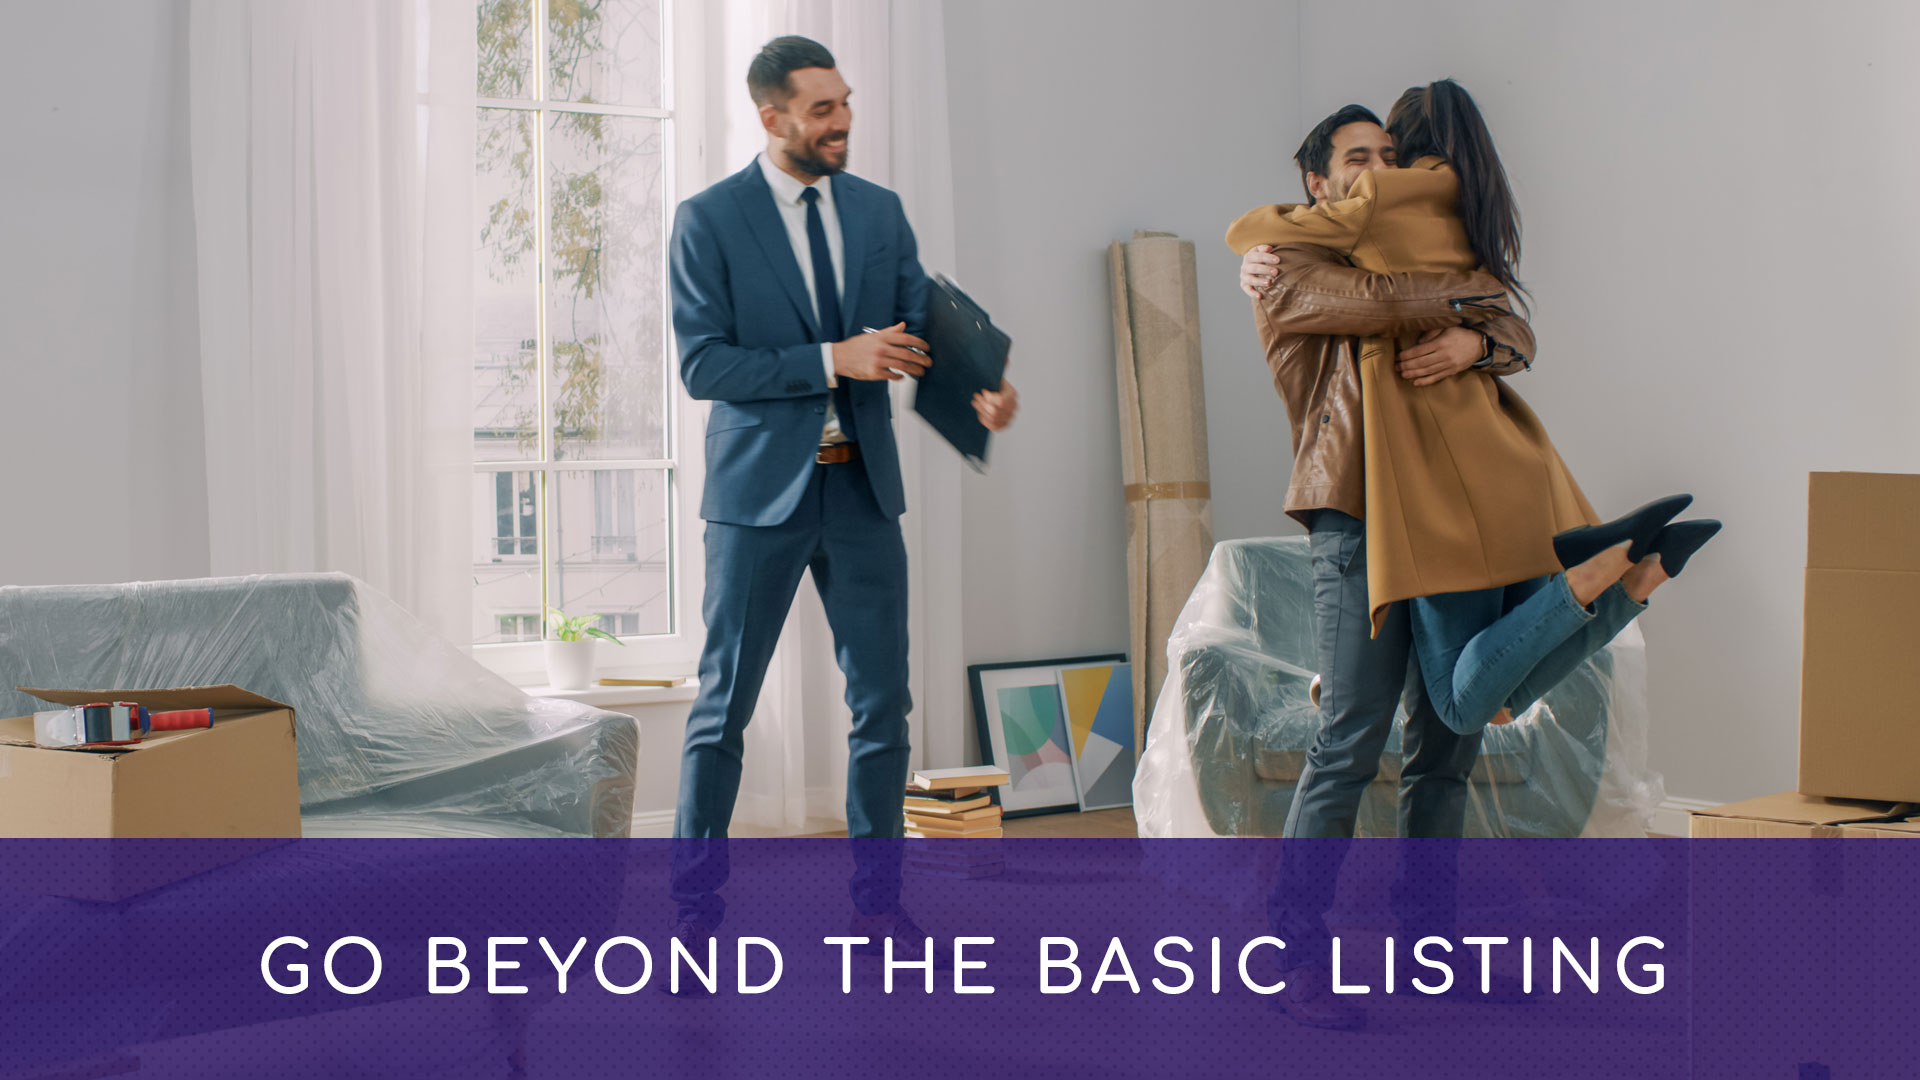 Go beyond the basic listing